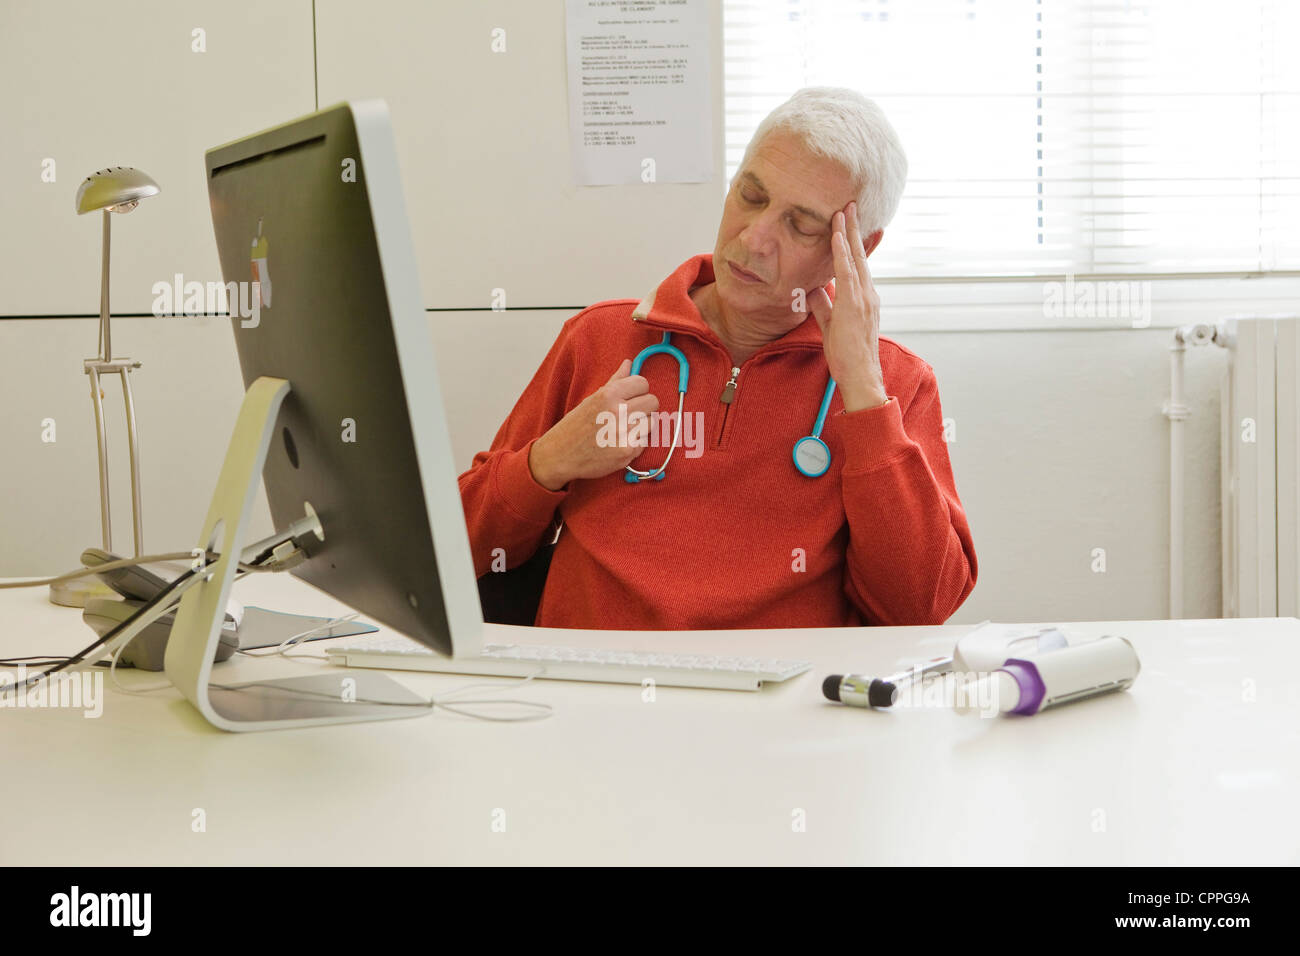 DOCTOR'S OFFICE - Stock Image